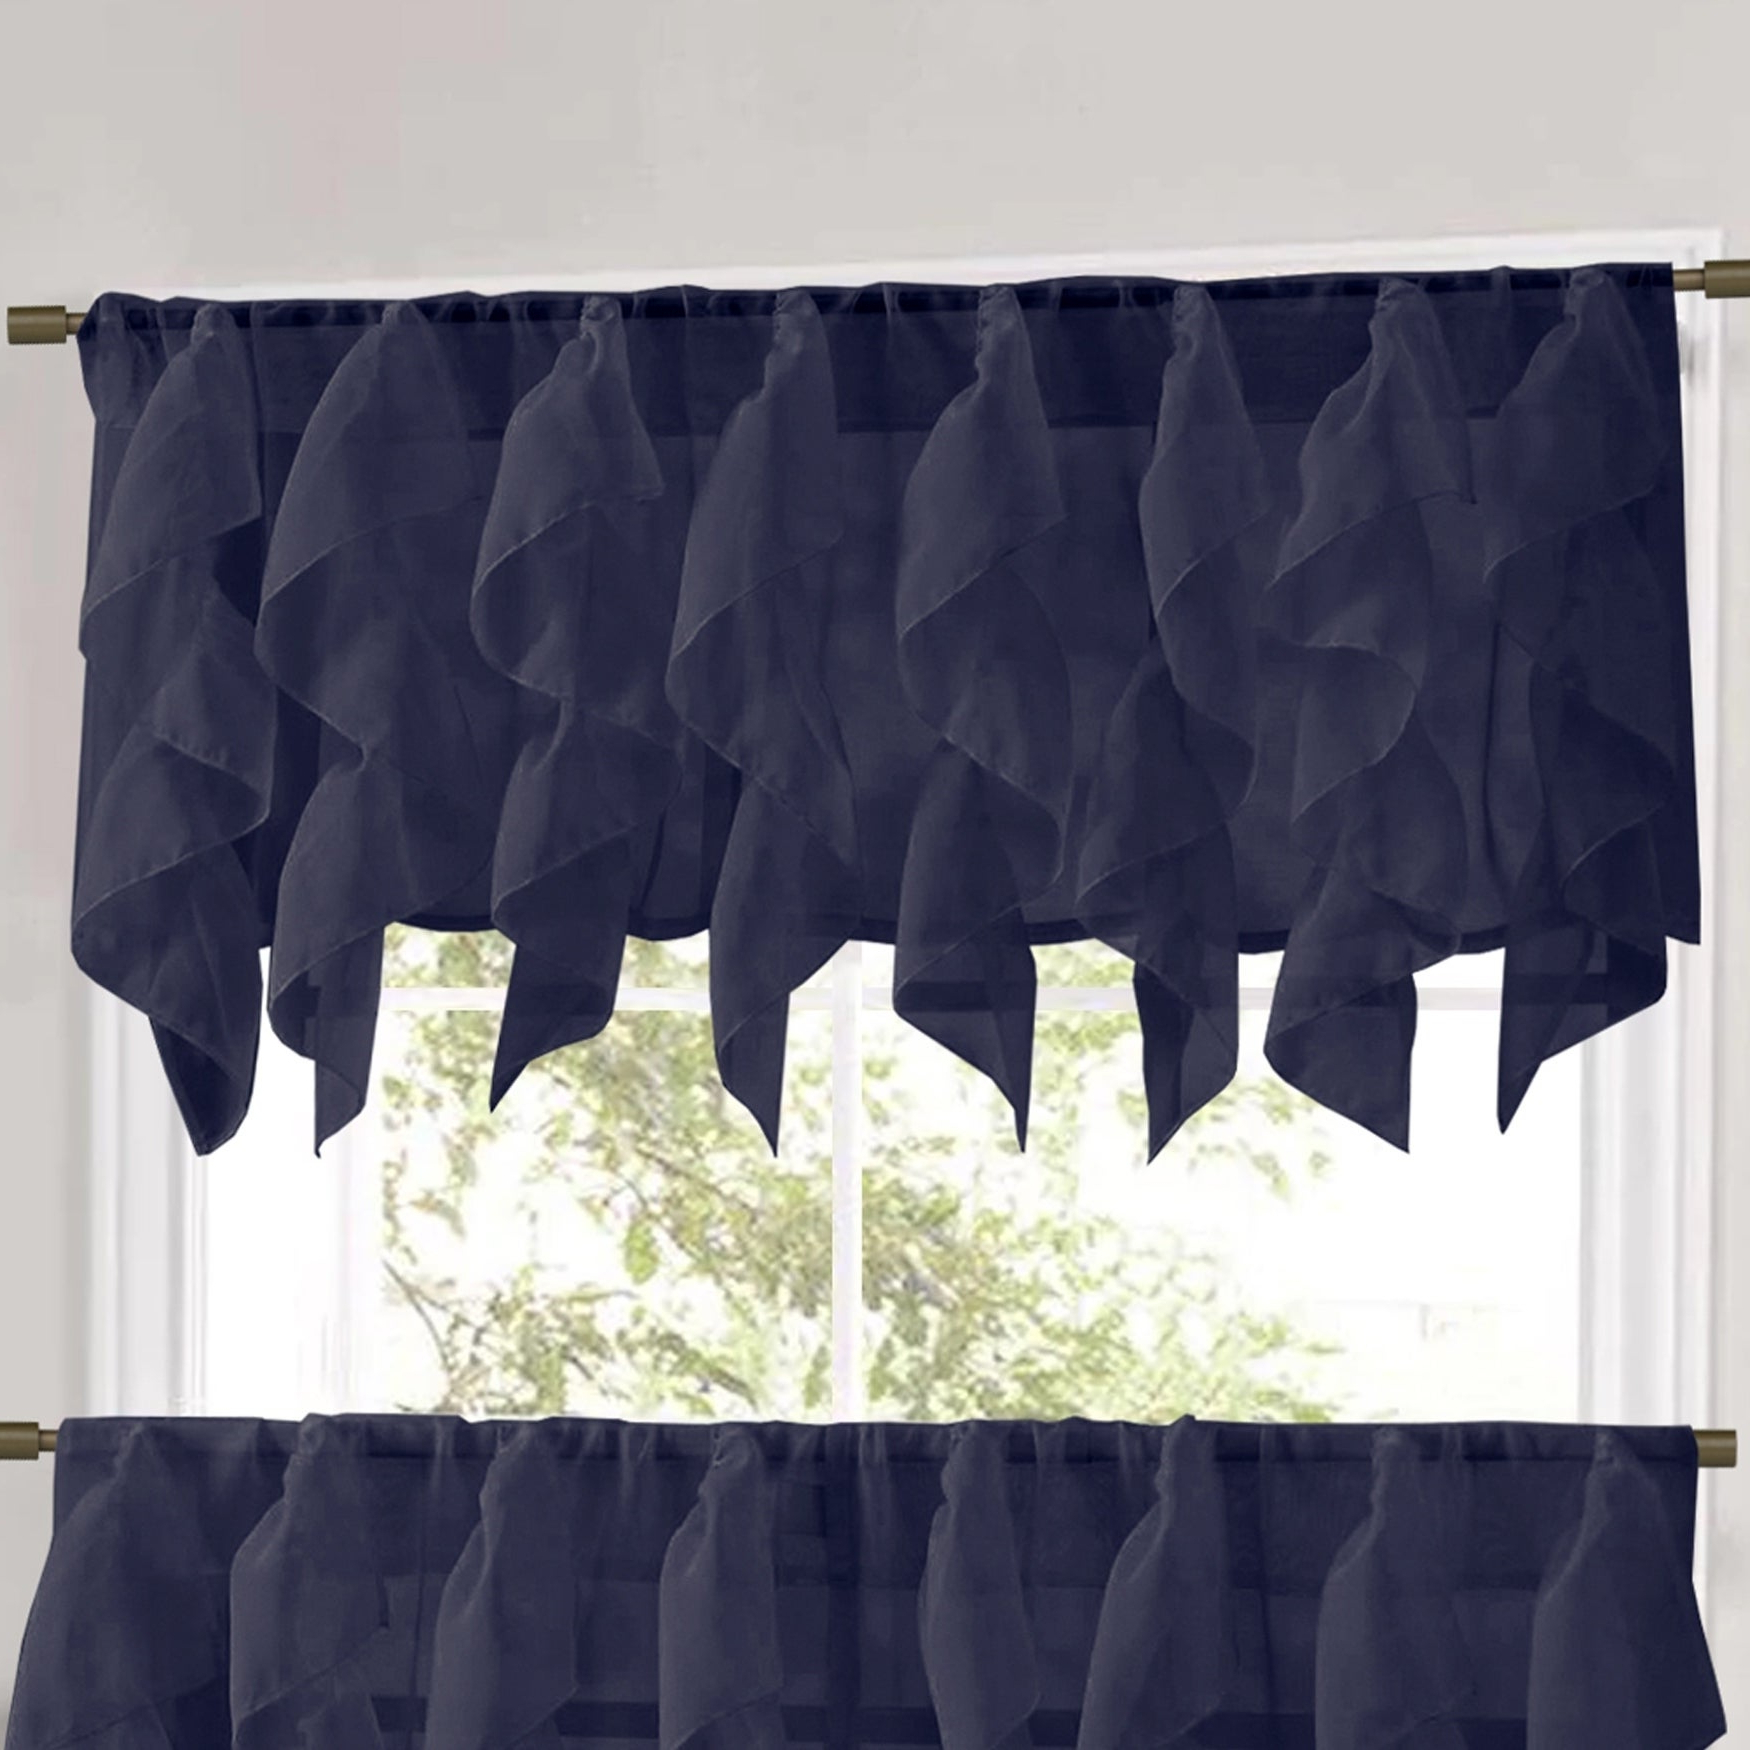 Sweet Home Collection Navy Vertical Ruffled Waterfall Valance And Curtain Tiers Within Widely Used Vertical Ruffled Waterfall Valance And Curtain Tiers (View 7 of 20)